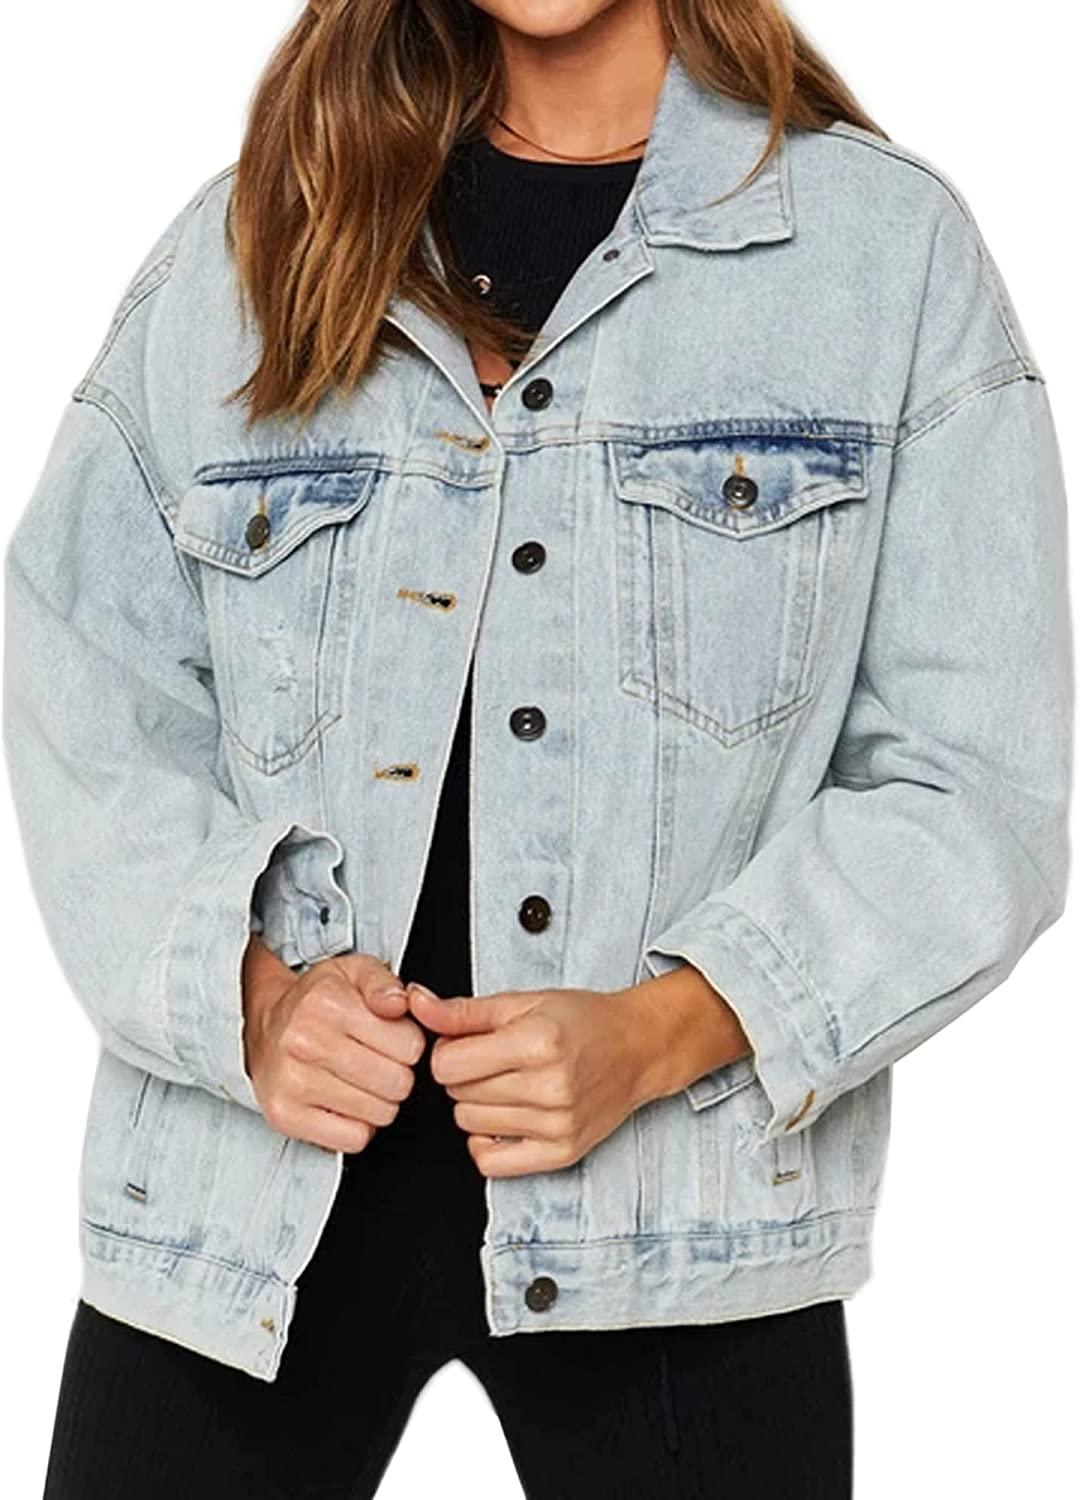 Oversized Denim Jacket for Women Long Jean Sleeve Loose Challenge the lowest price of Japan ☆ In a popularity Classic